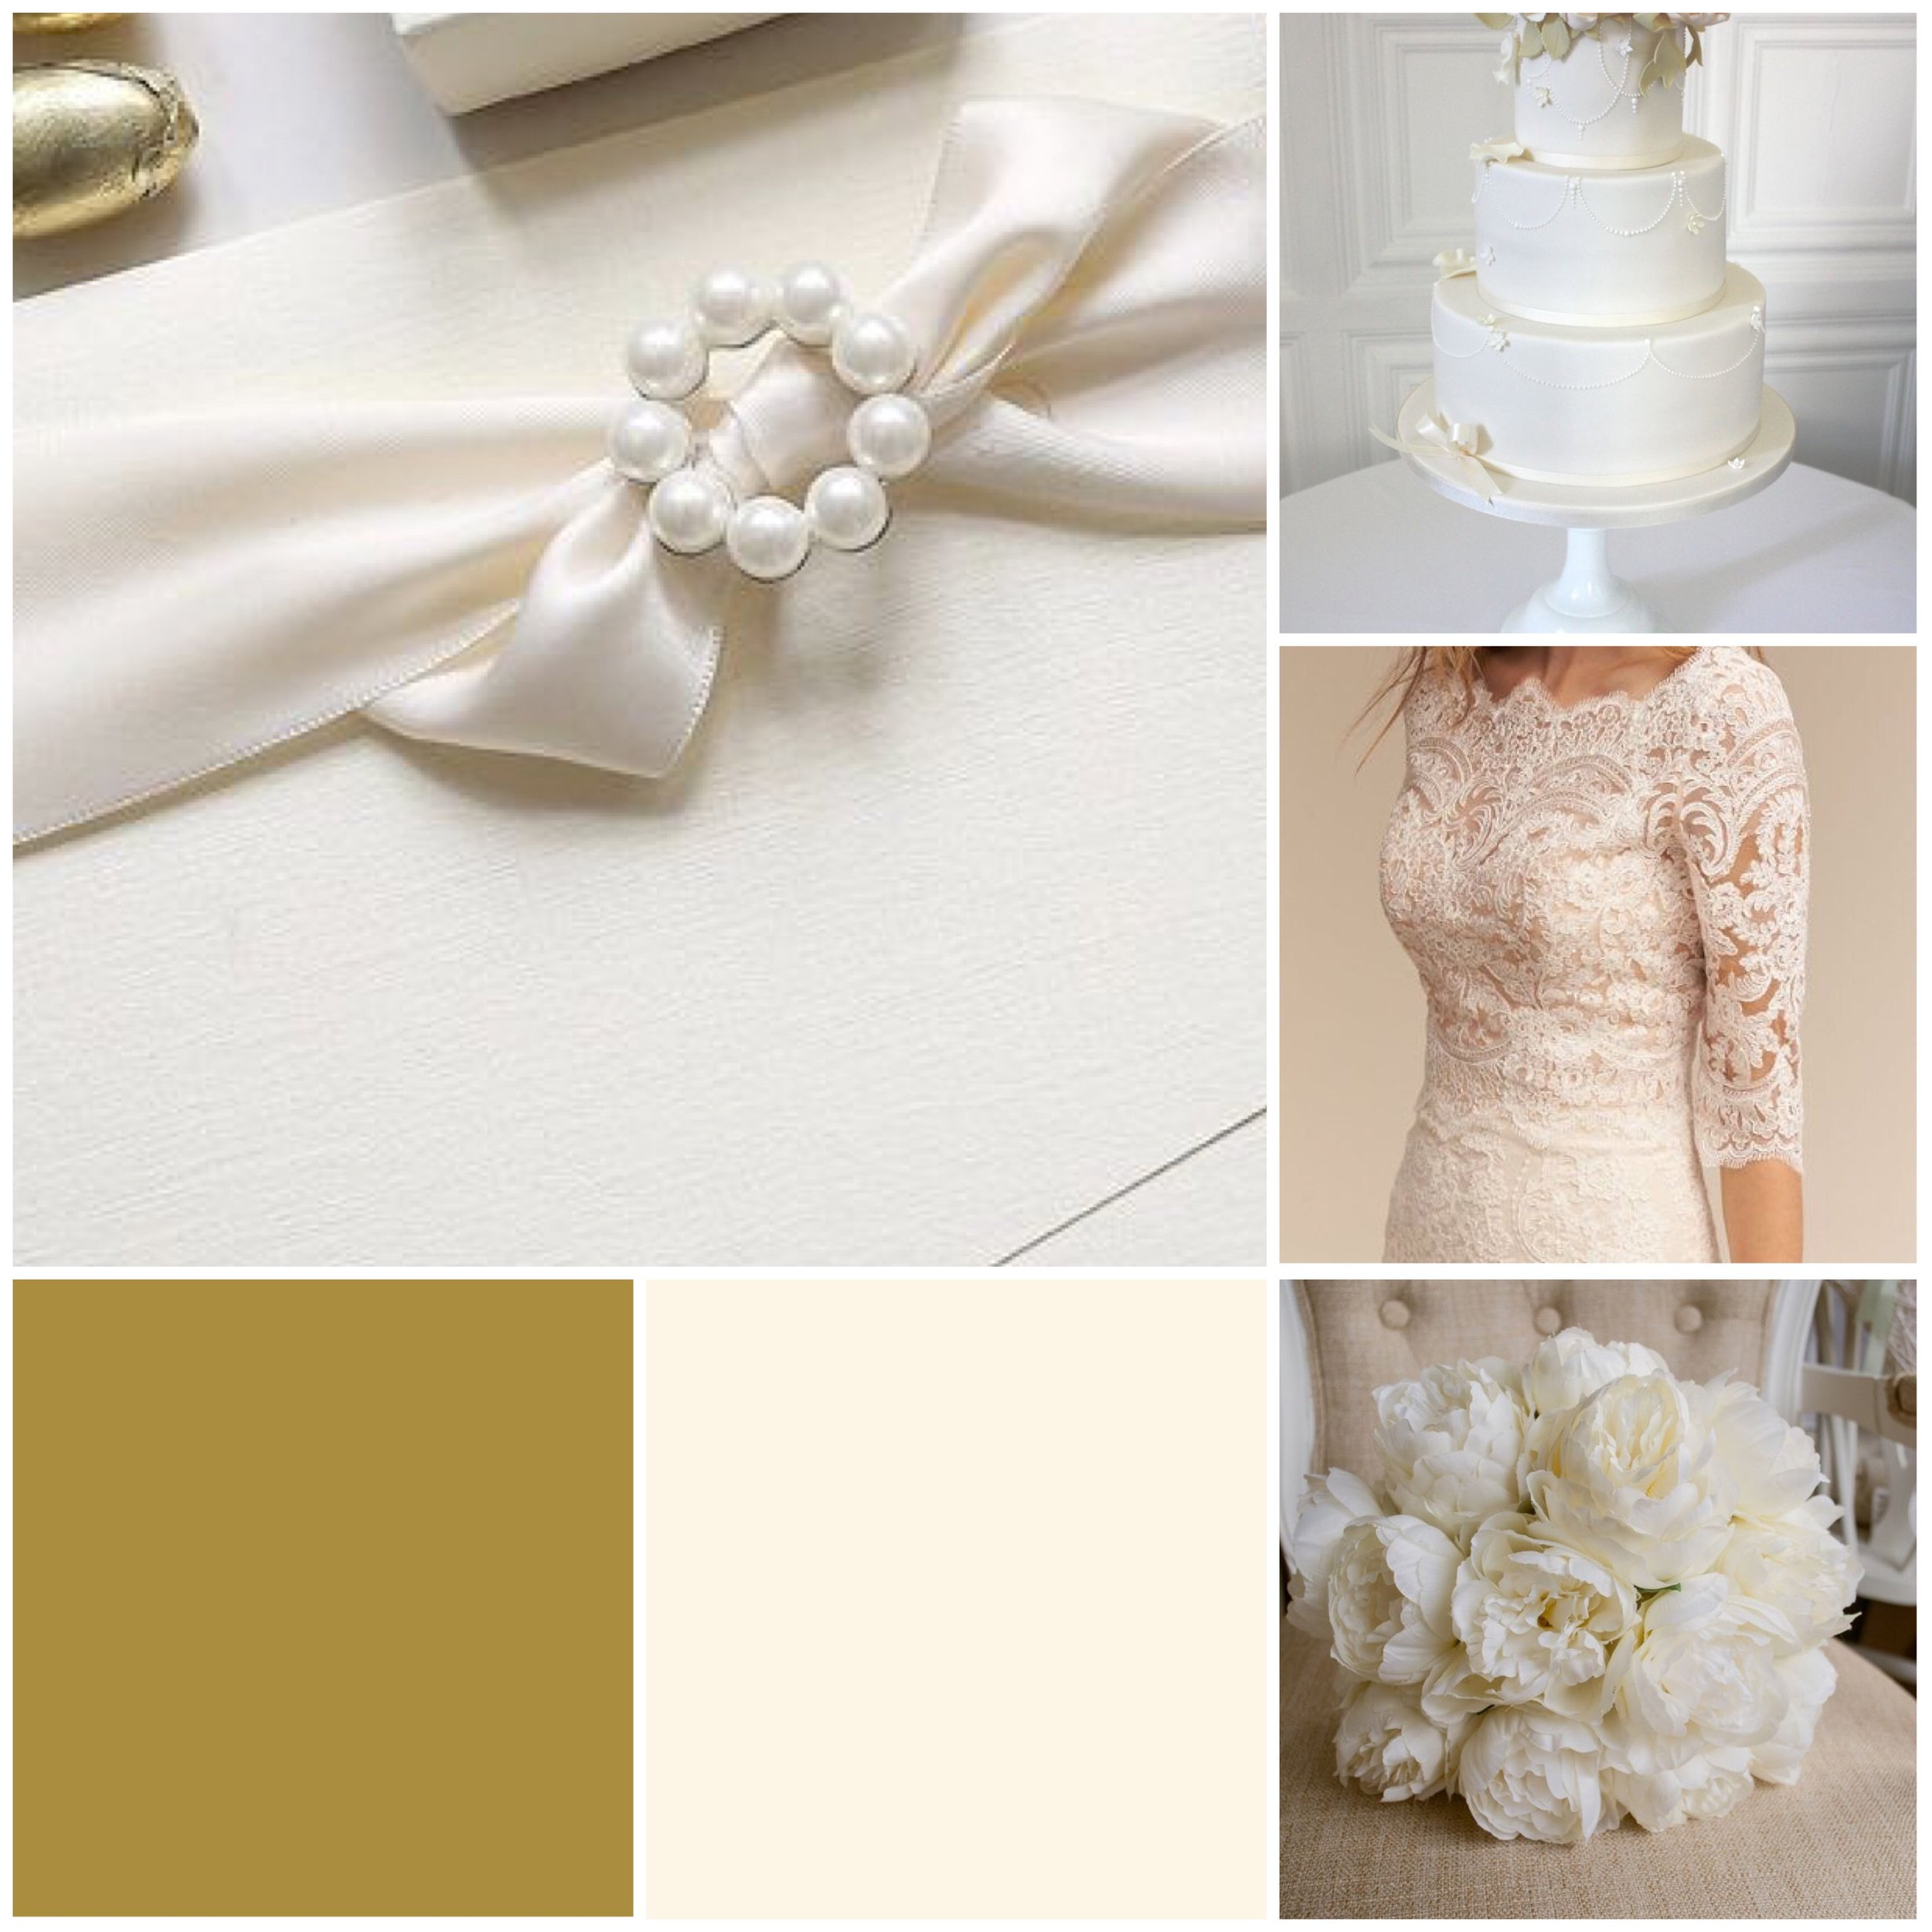 Lace & Gold Moodboard for your wedding inspiration.